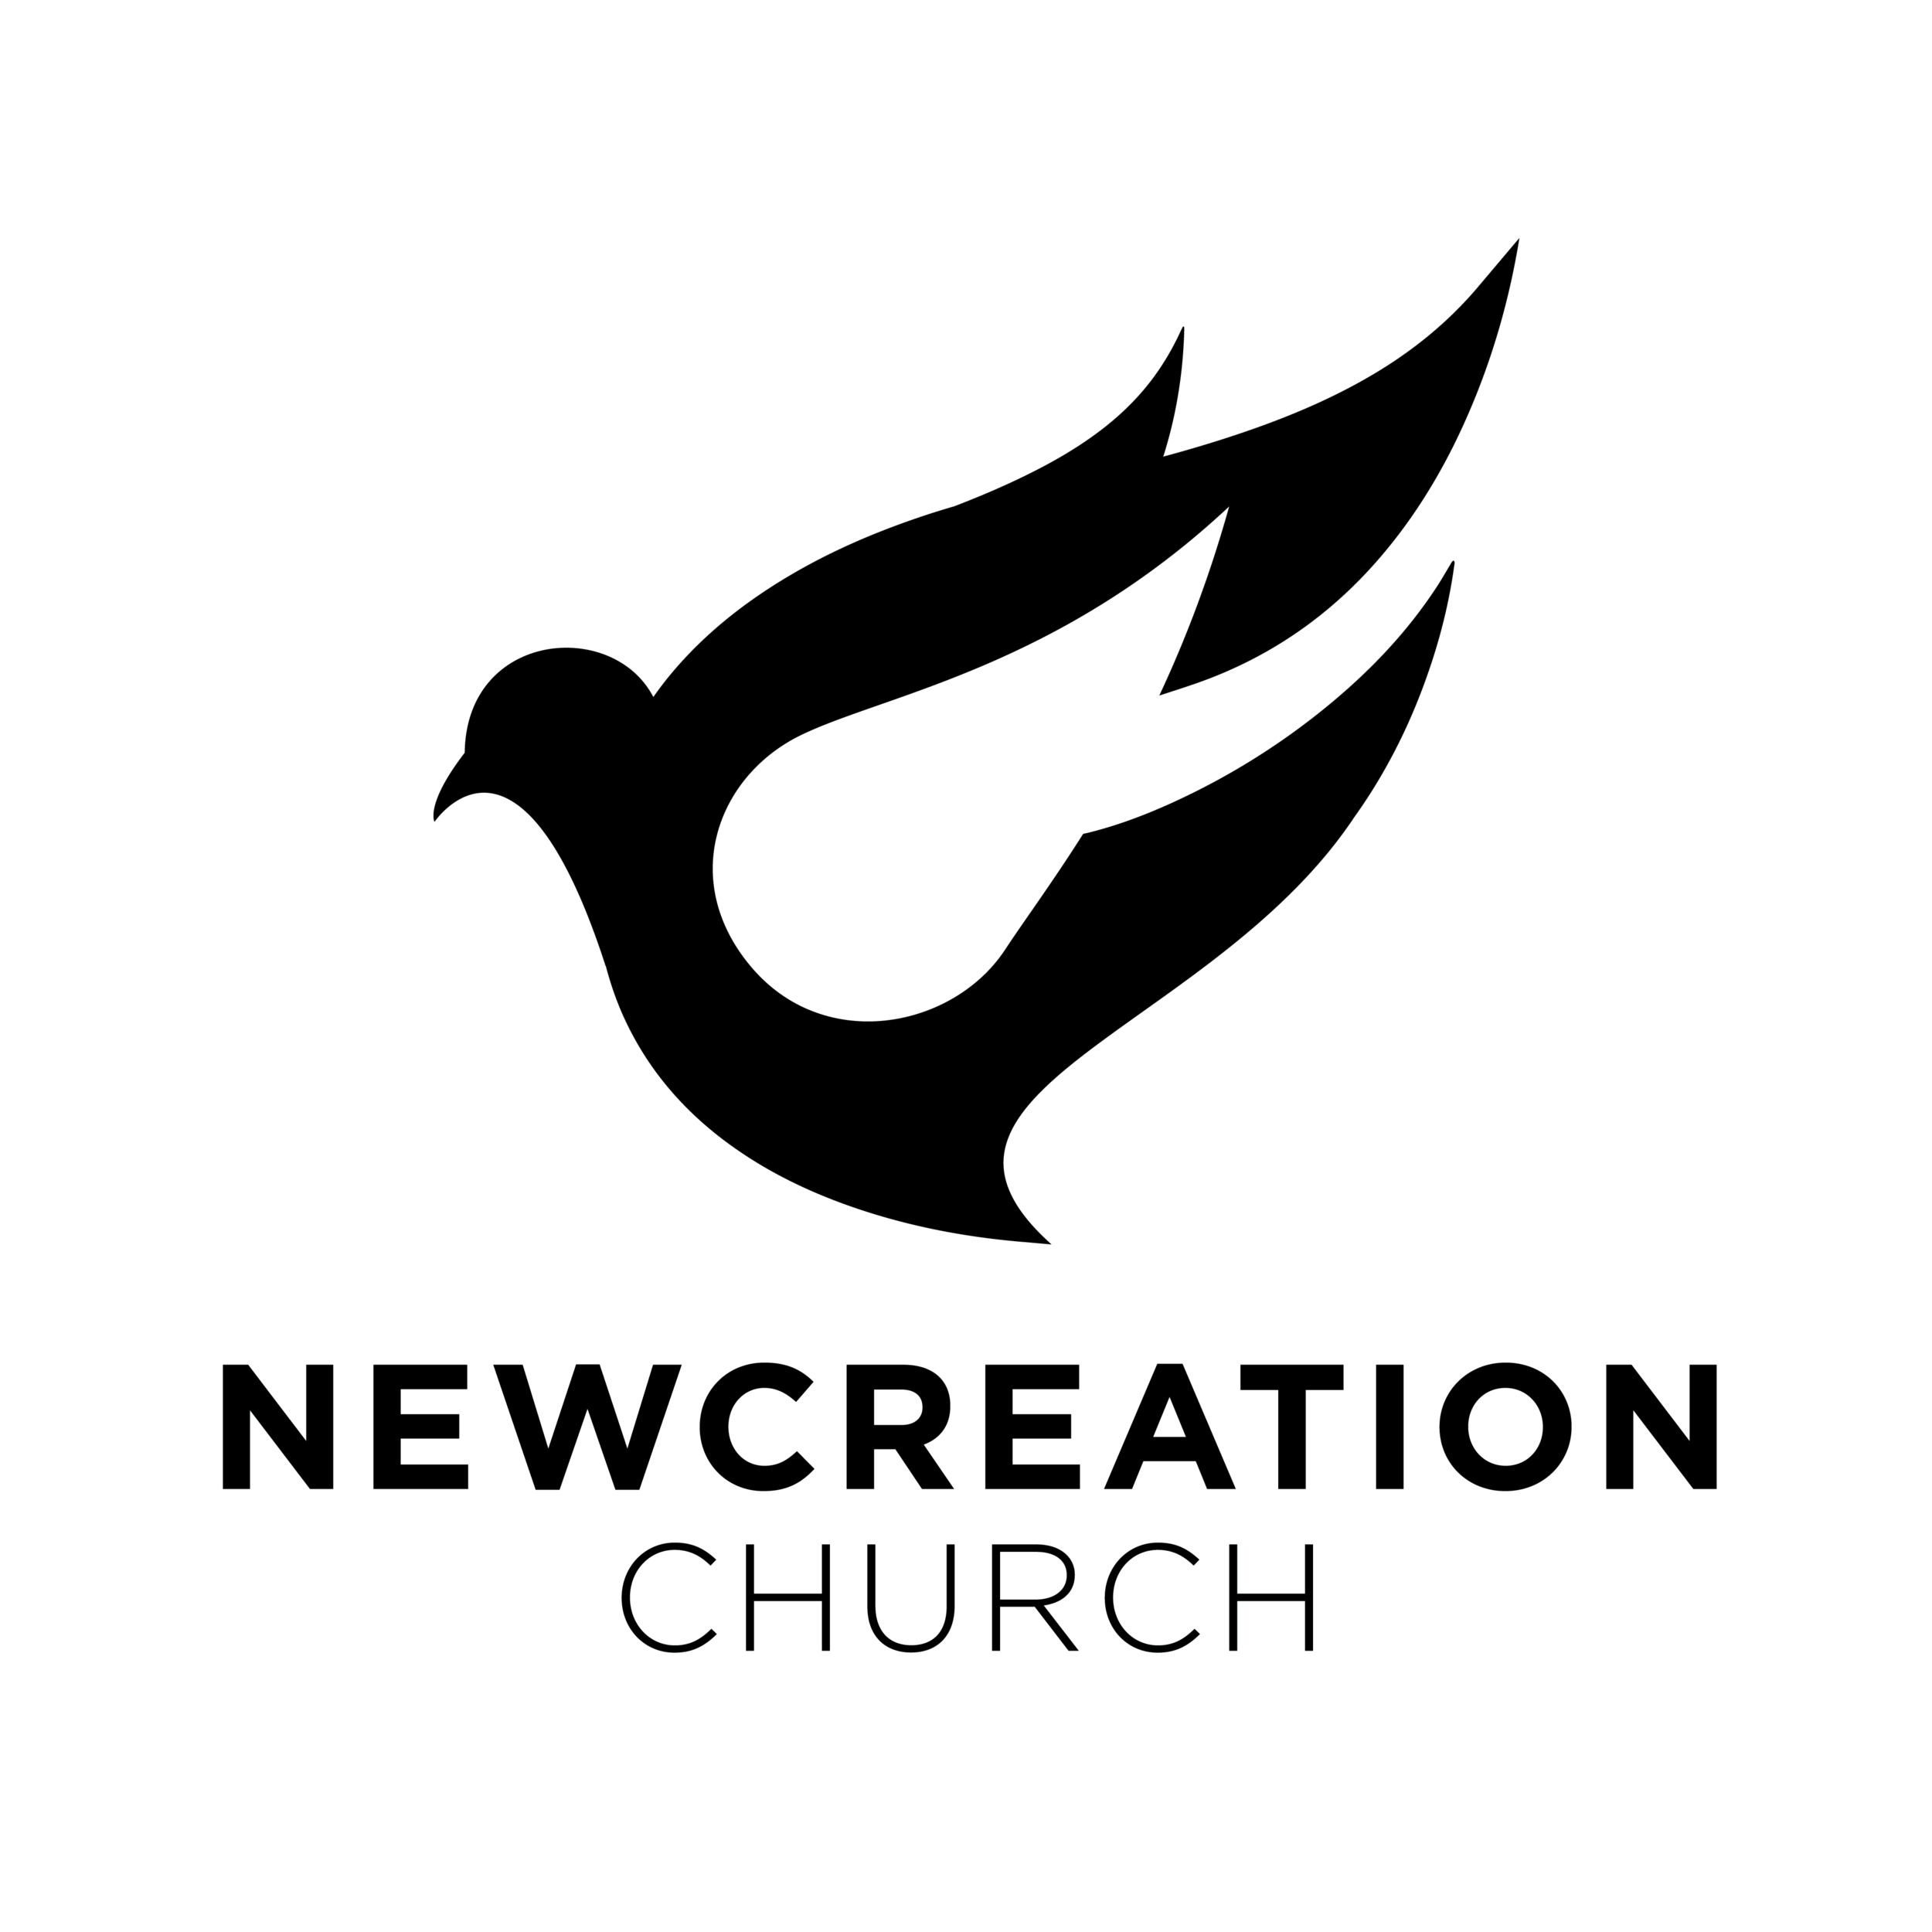 New Creation Church.png